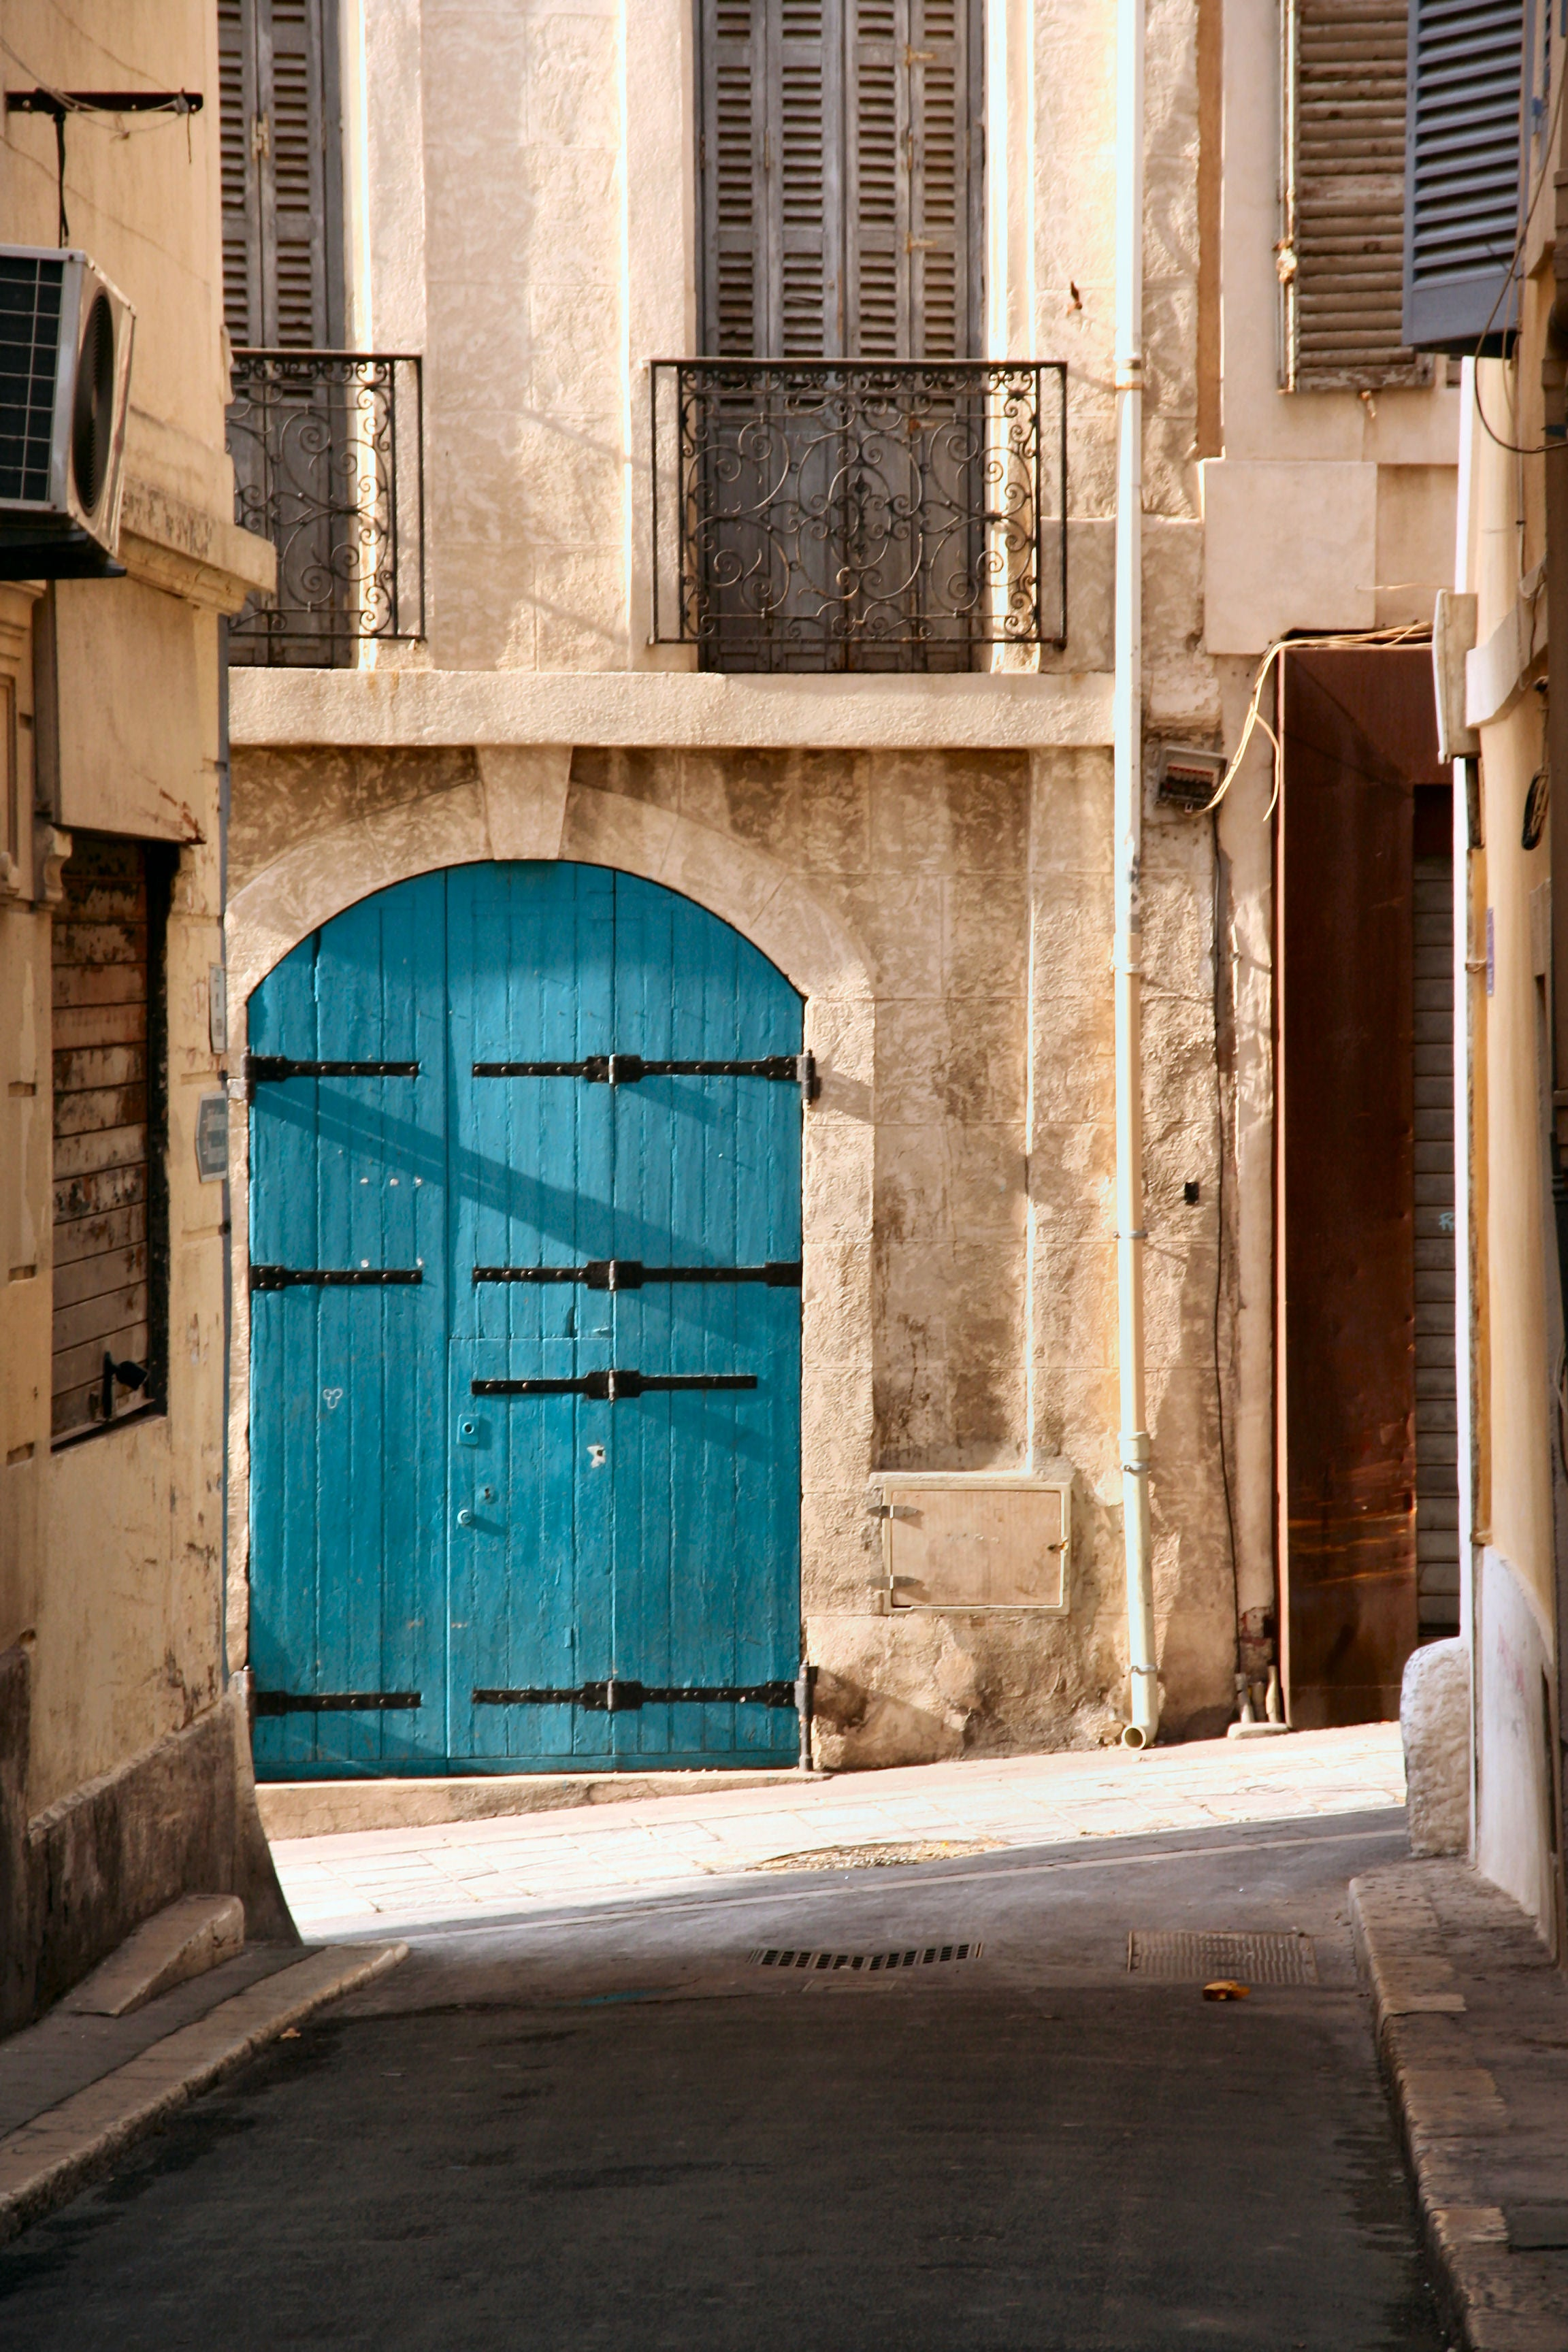 Le Panier (Old Town of Marseille)